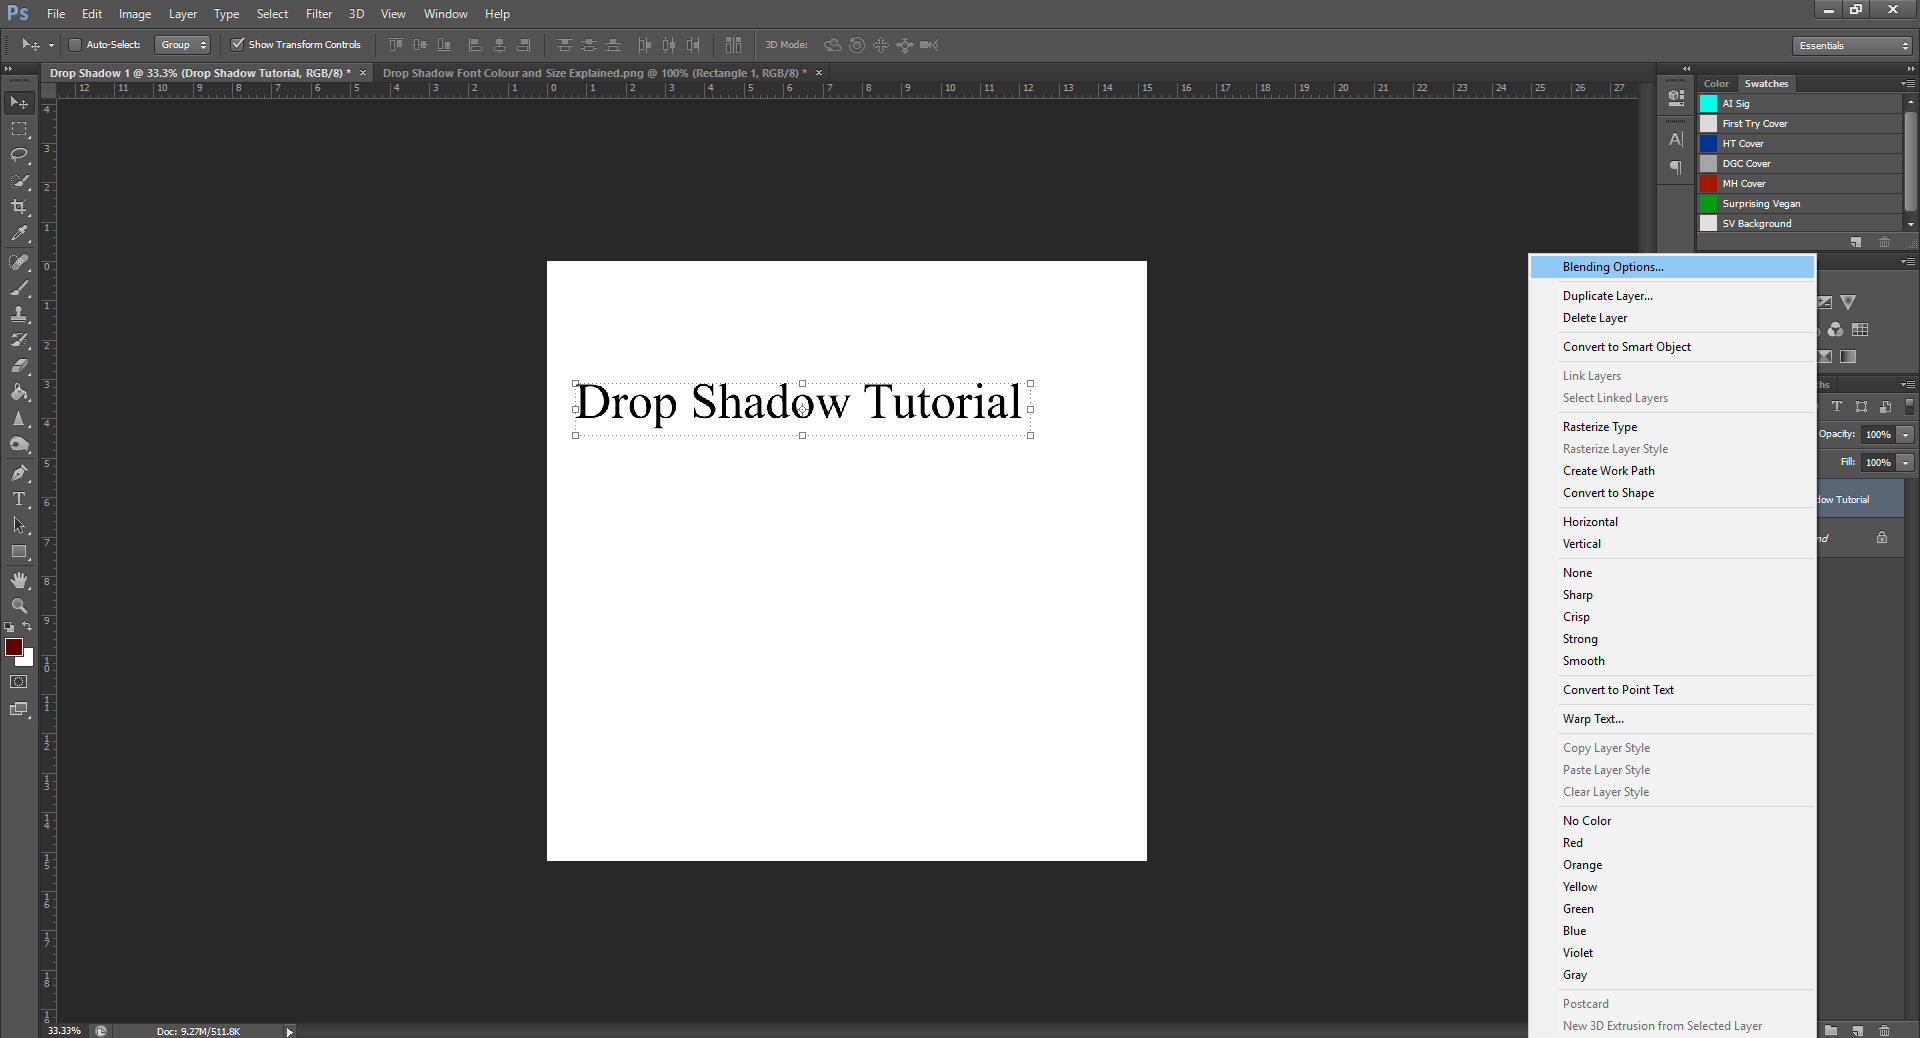 AterImber.com - Writing - Writing Tips - PHSH Tutorial - Drop Shadow - Blending Options Right-Clicked